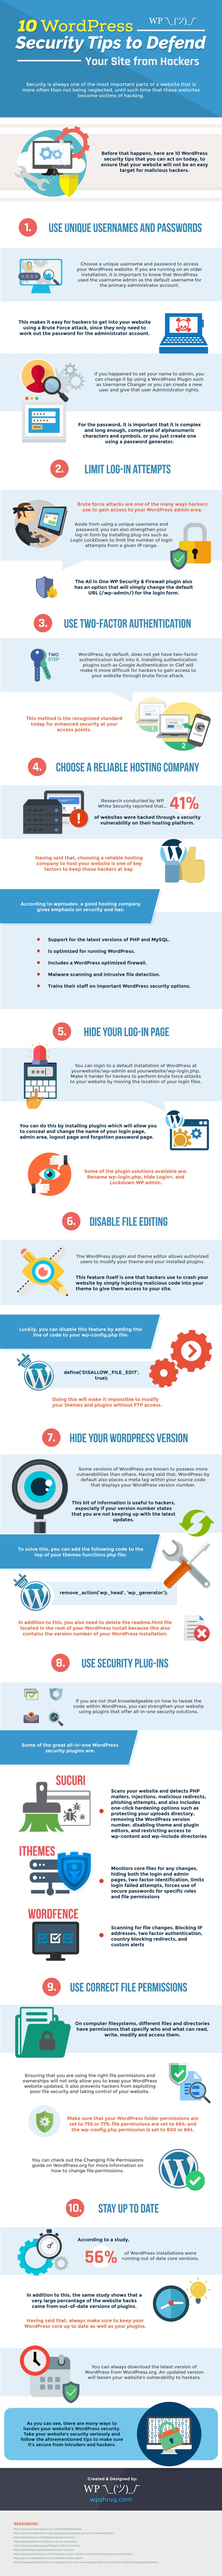 10 WordPress Security Tips to Defend Your Site From Hackers [Infographic]